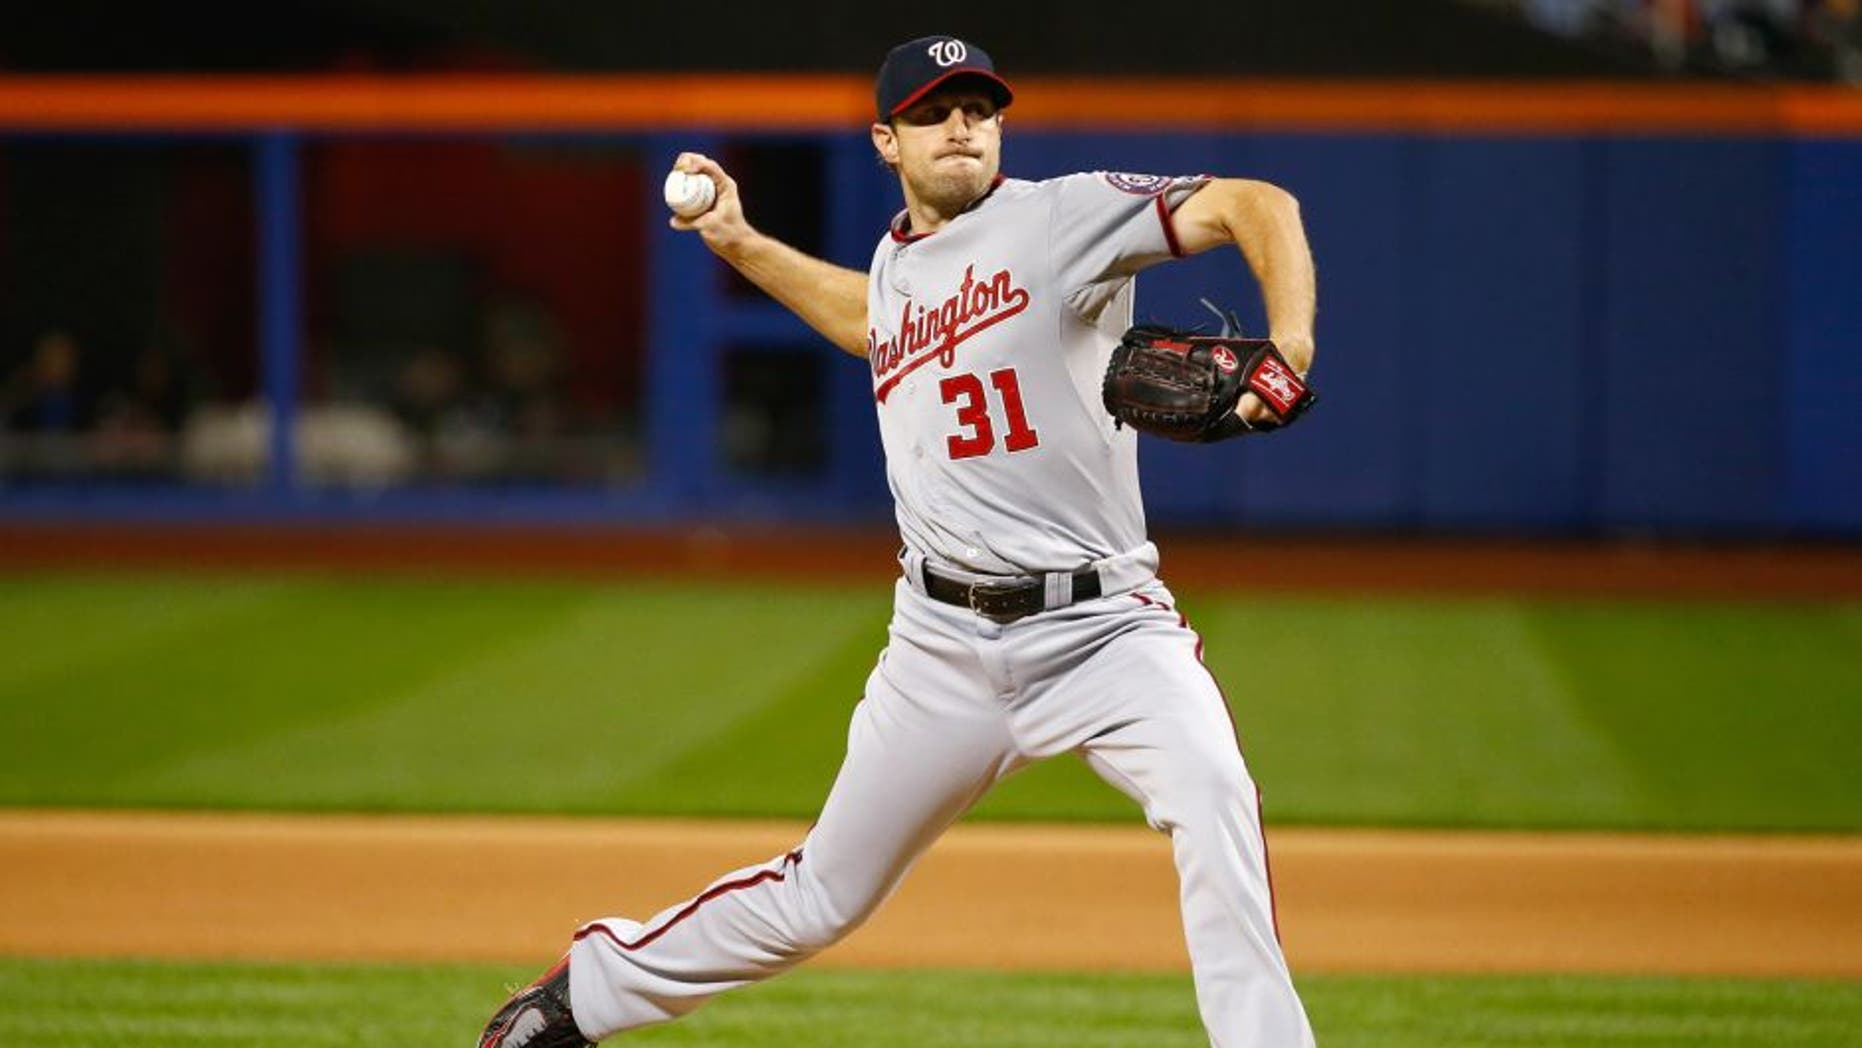 NEW YORK, NY - OCTOBER 03: Max Scherzer #31 of the Washington Nationals pitches against the New York Mets during their game at Citi Field on October 3, 2015 in New York City. (Photo by Al Bello/Getty Images)